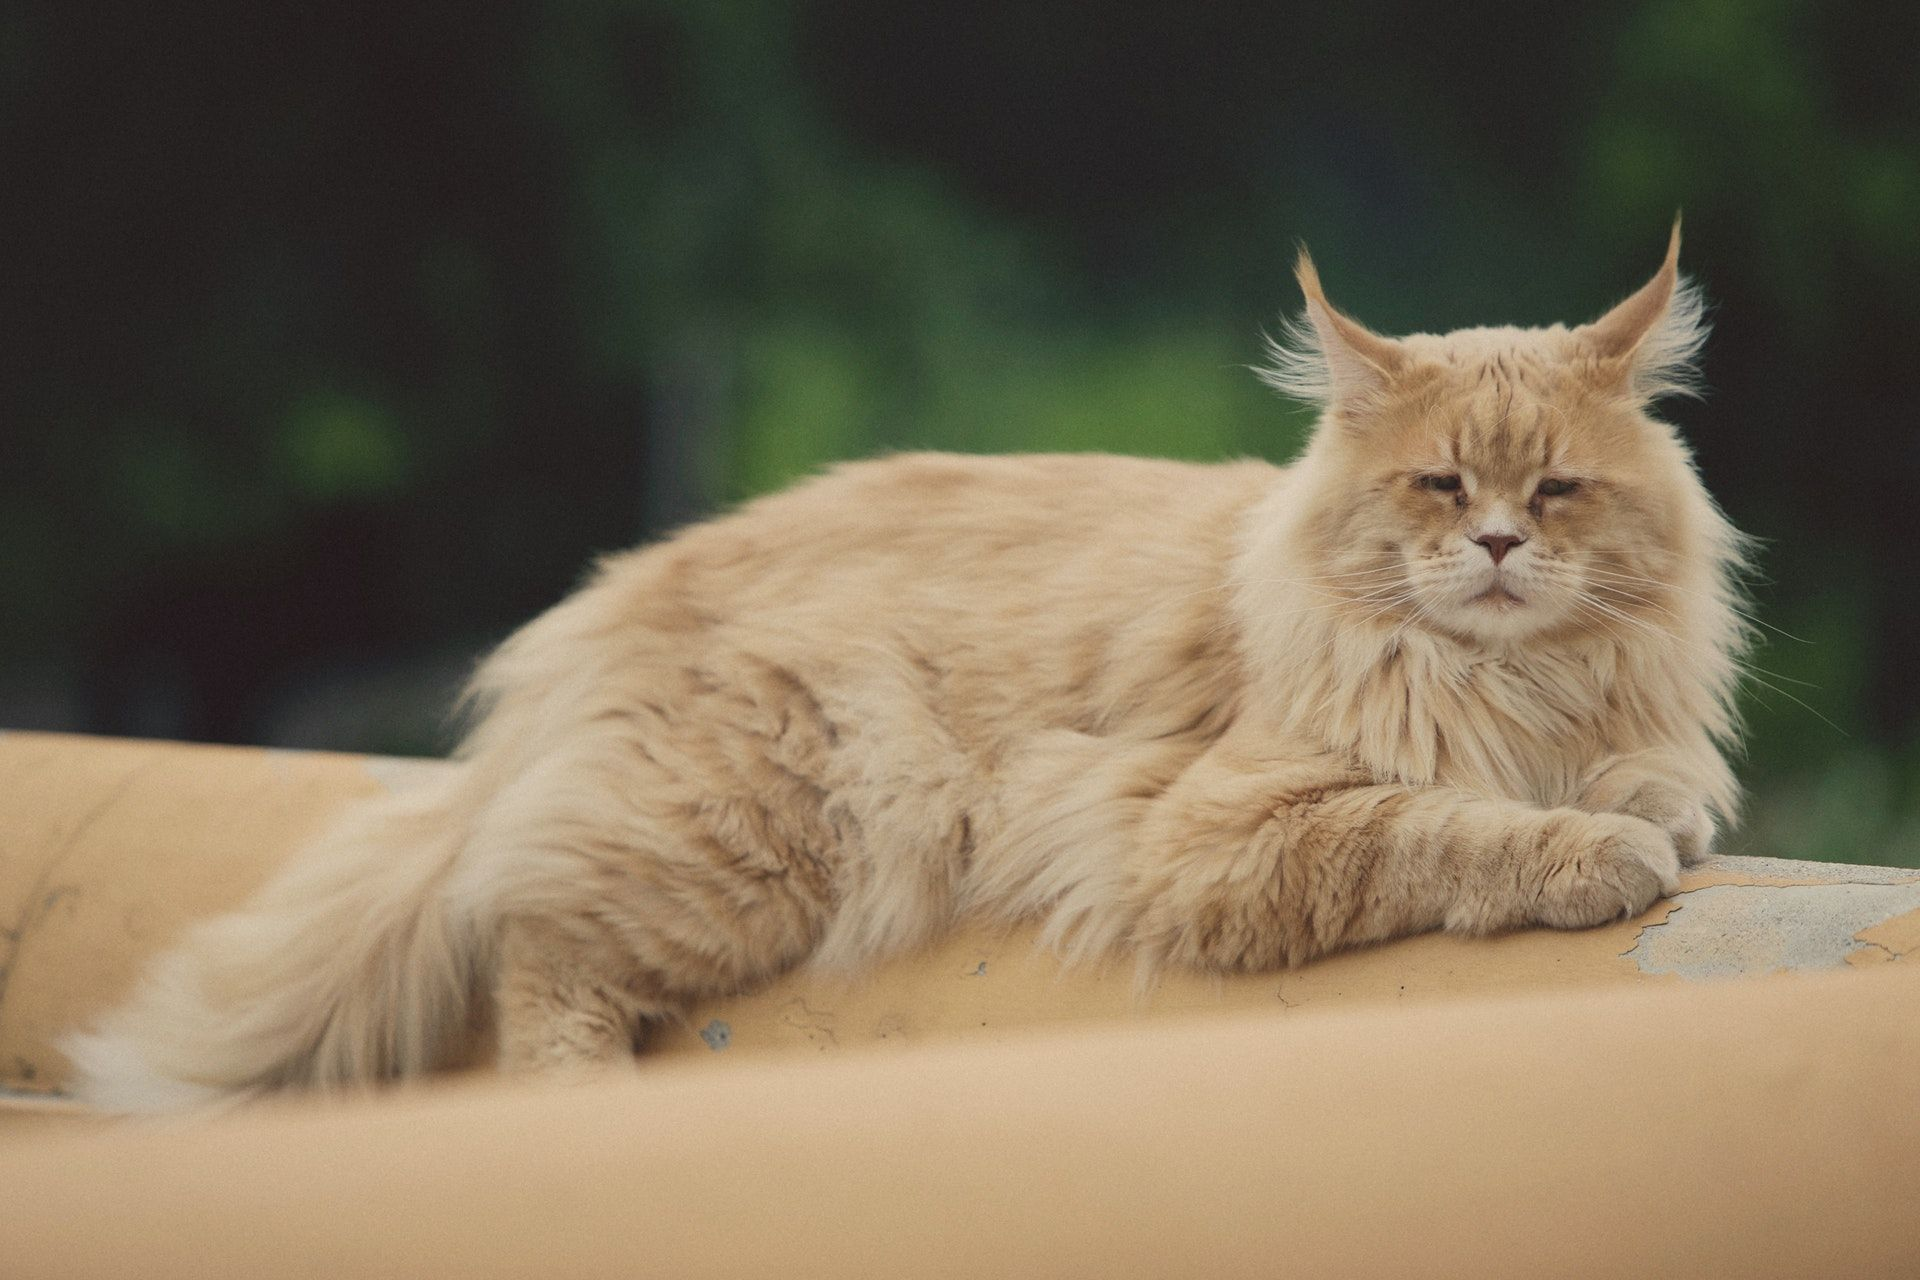 Large Domestic Cat Breeds Top 7 Largest Cat Breeds in